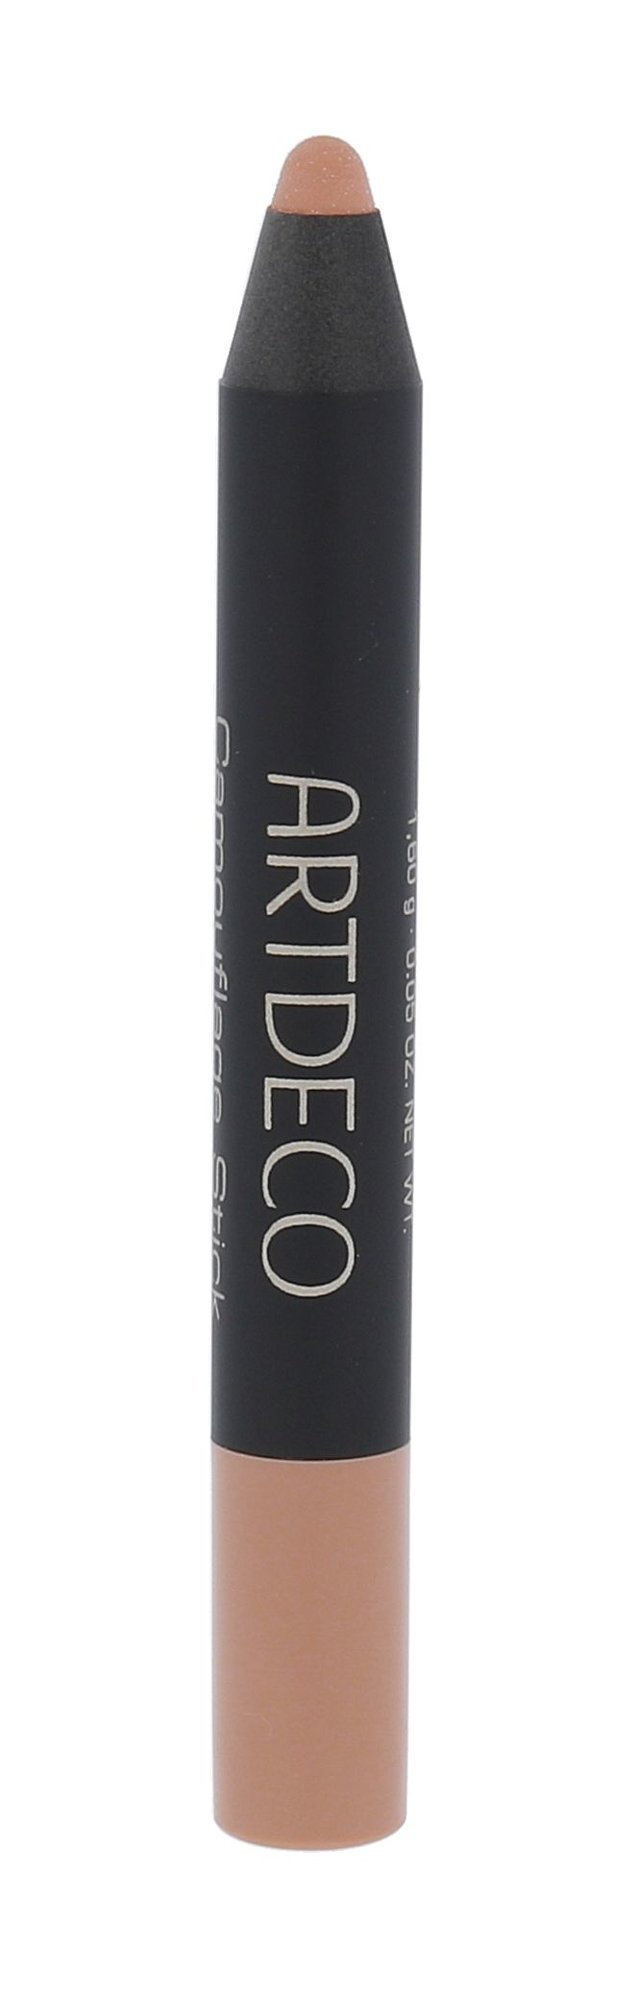 Artdeco Camouflage Cosmetic 1,6ml 5 Sahara Rose